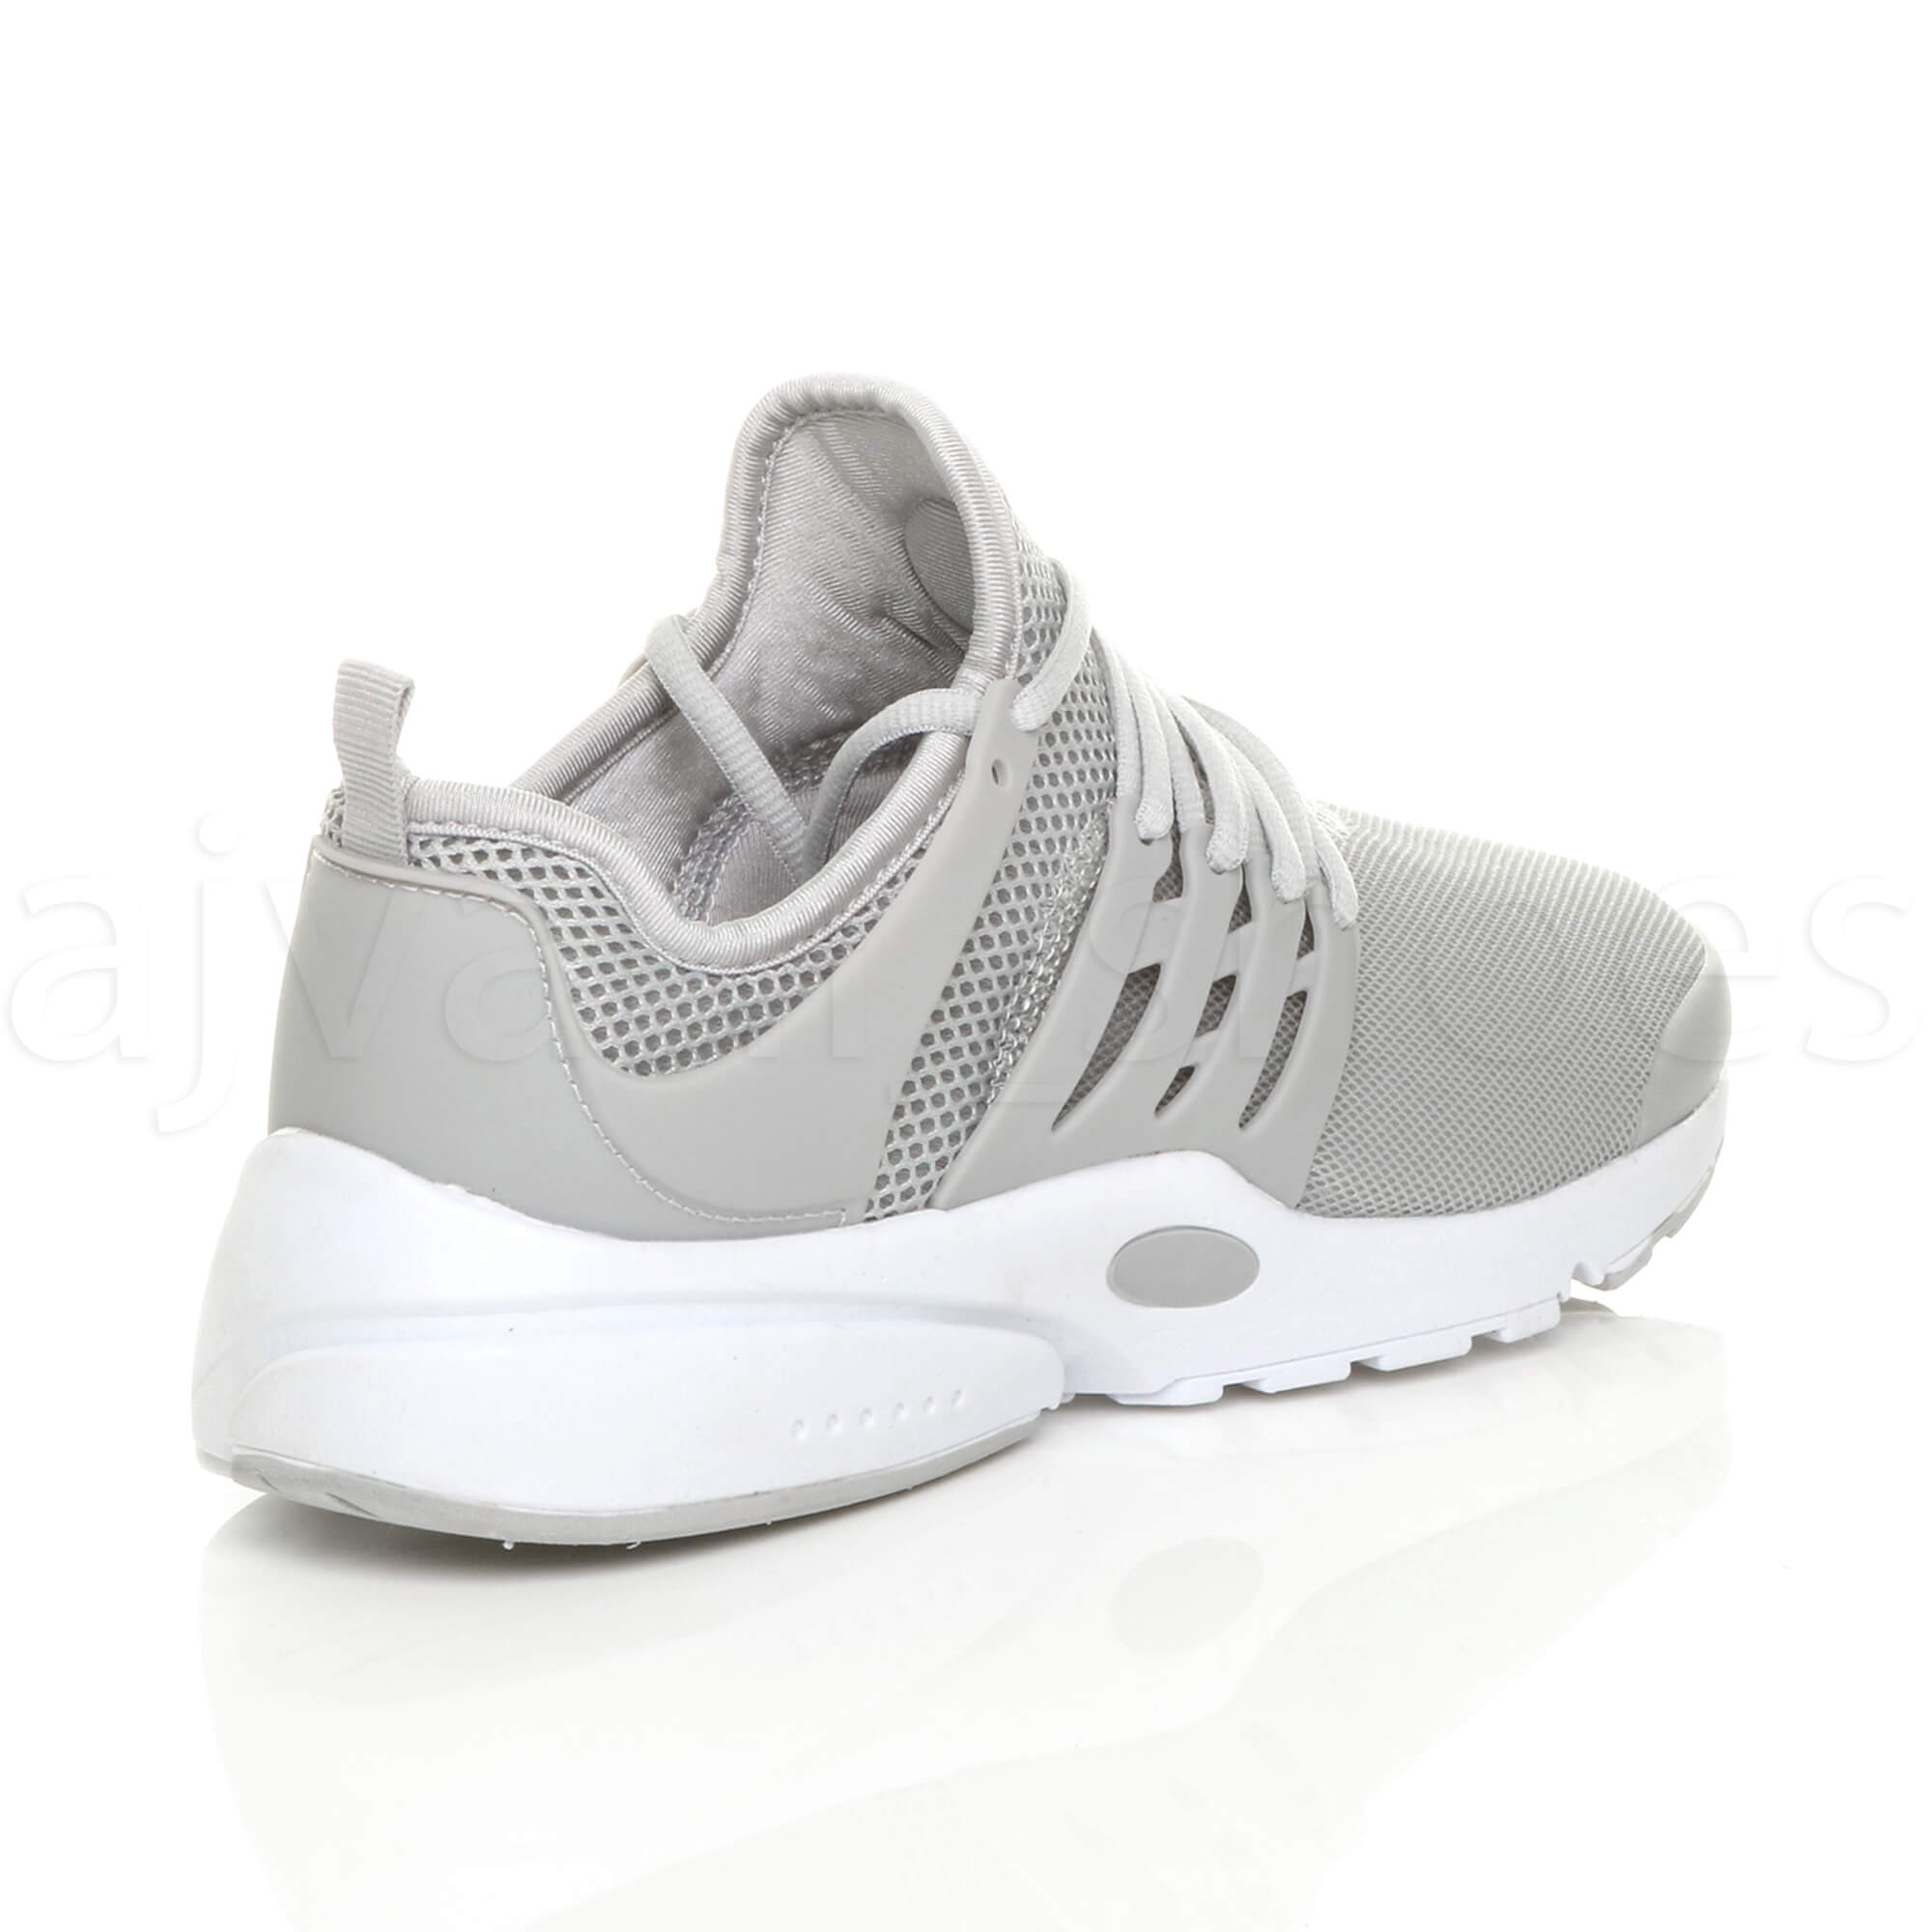 MENS-LACE-UP-SPORTS-GYM-FITNESS-RUNNING-FLEXIBLE-TRAINERS-CASUAL-SNEAKERS-SIZE thumbnail 21